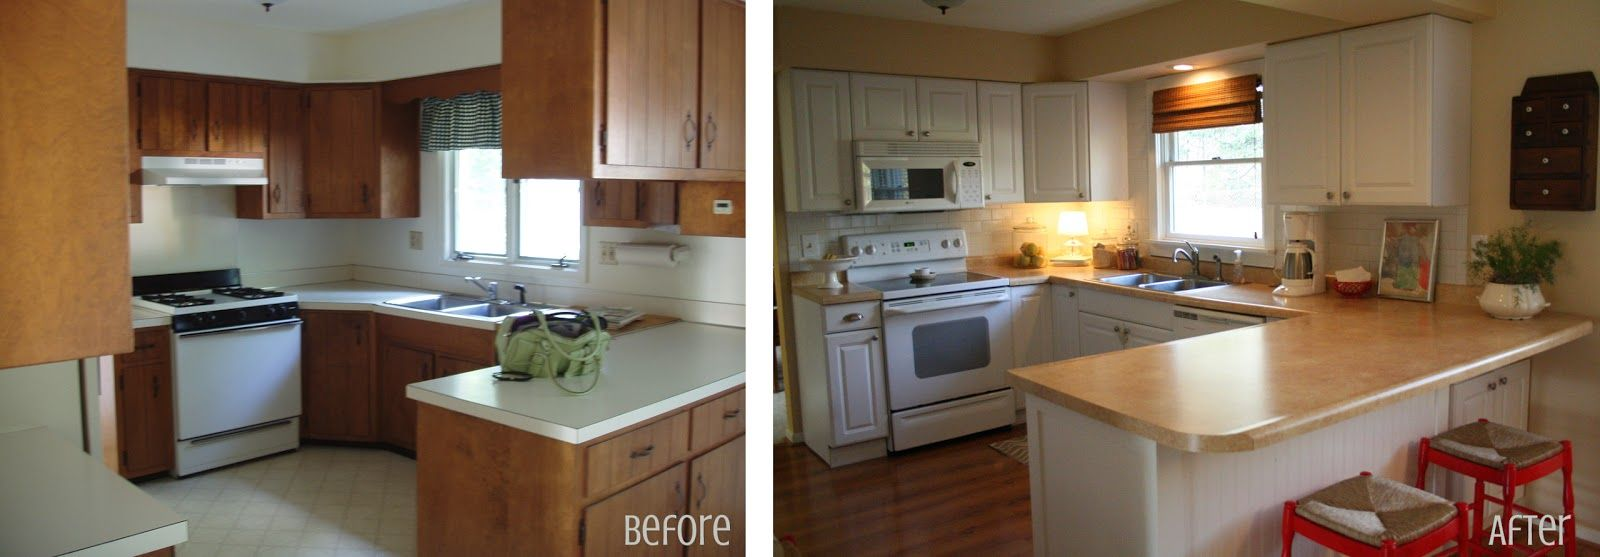 S Kitchen Makeover Before After S Kitchen Kitchens And - Kitchen before and after remodels